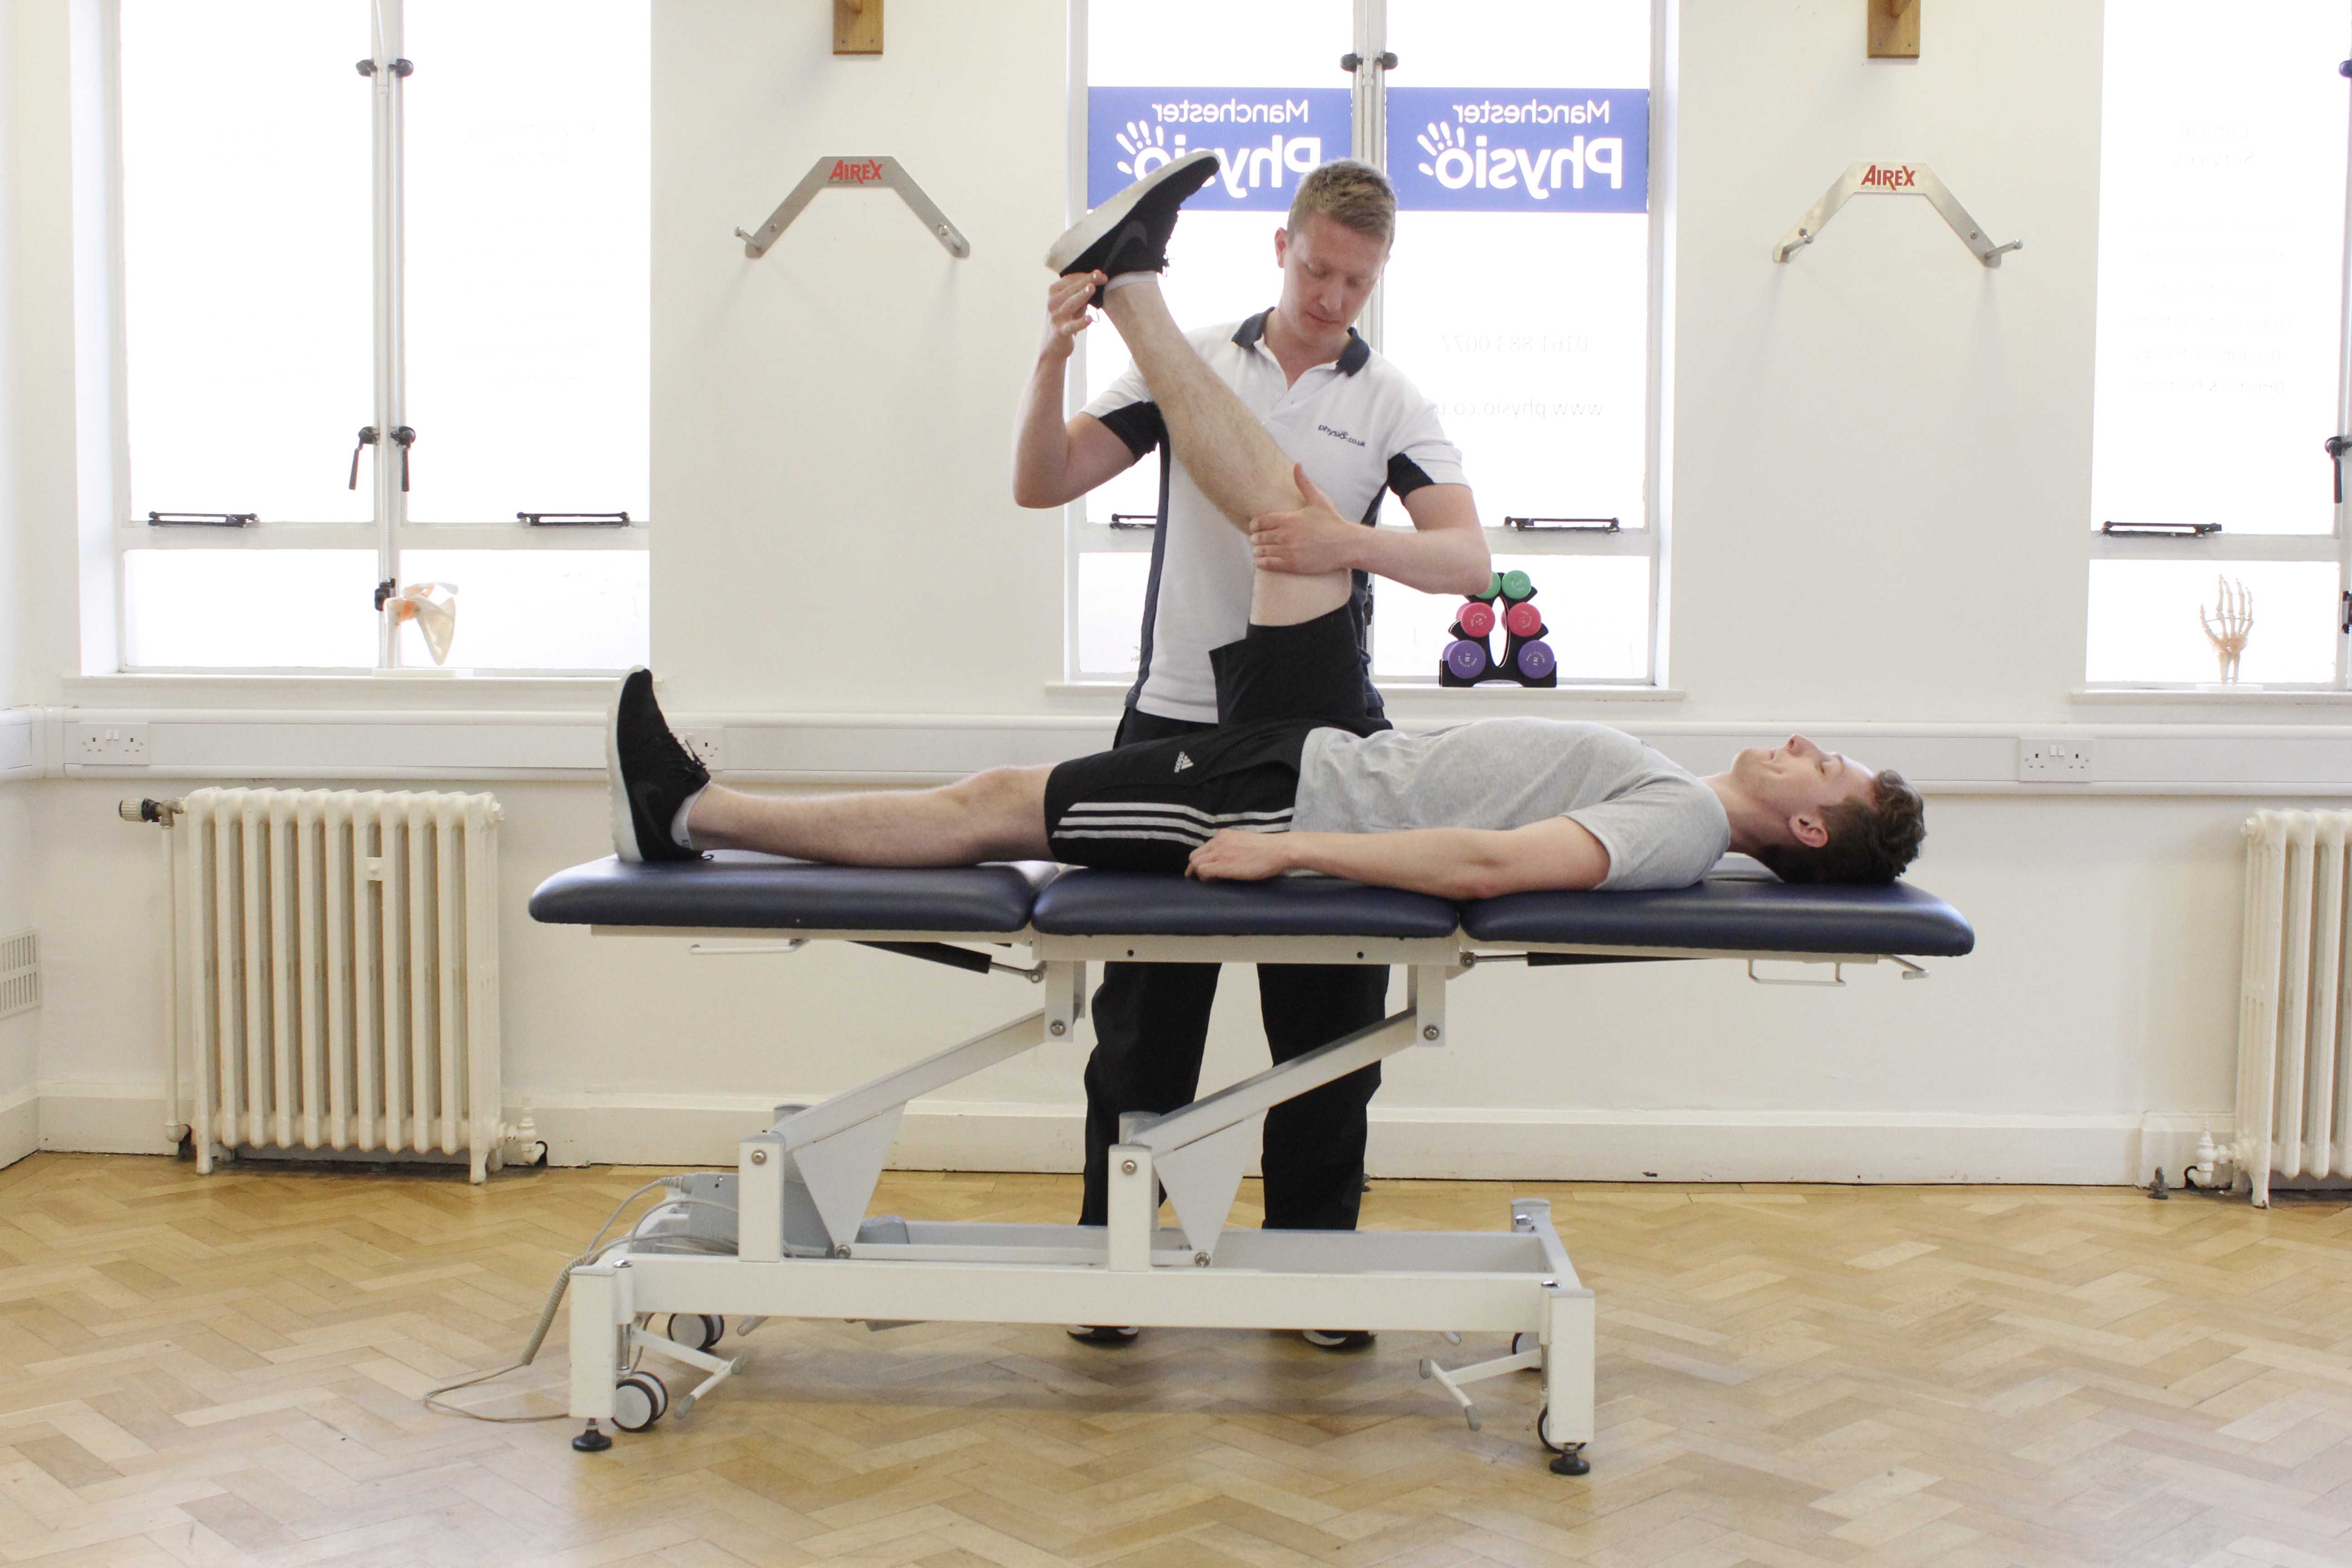 Passive stretch to hamstring and calf muscles, applied by physiotherapist